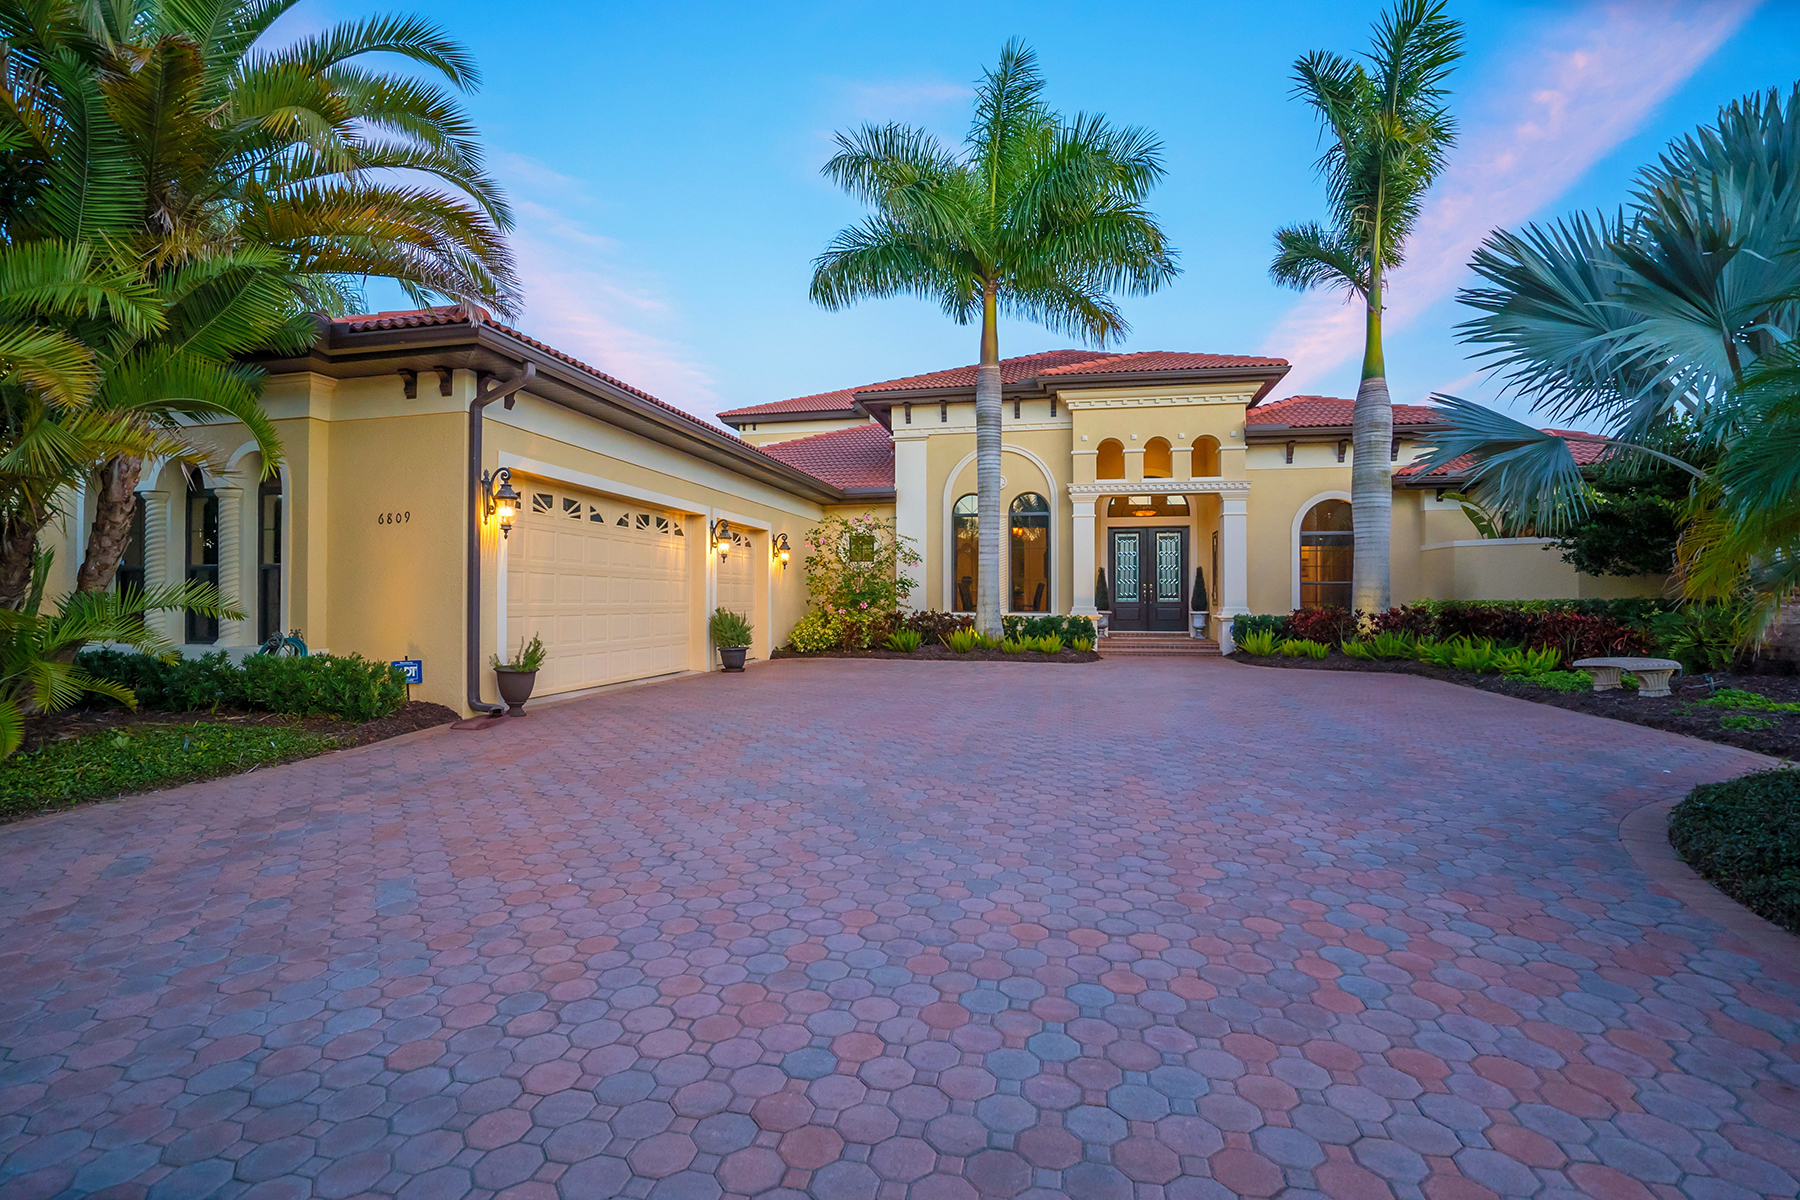 Villa per Vendita alle ore LAKEWOOD RANCH COUNTRY CLUB VILLAGE 6809 Belmont Ct Lakewood Ranch, Florida 34202 Stati Uniti